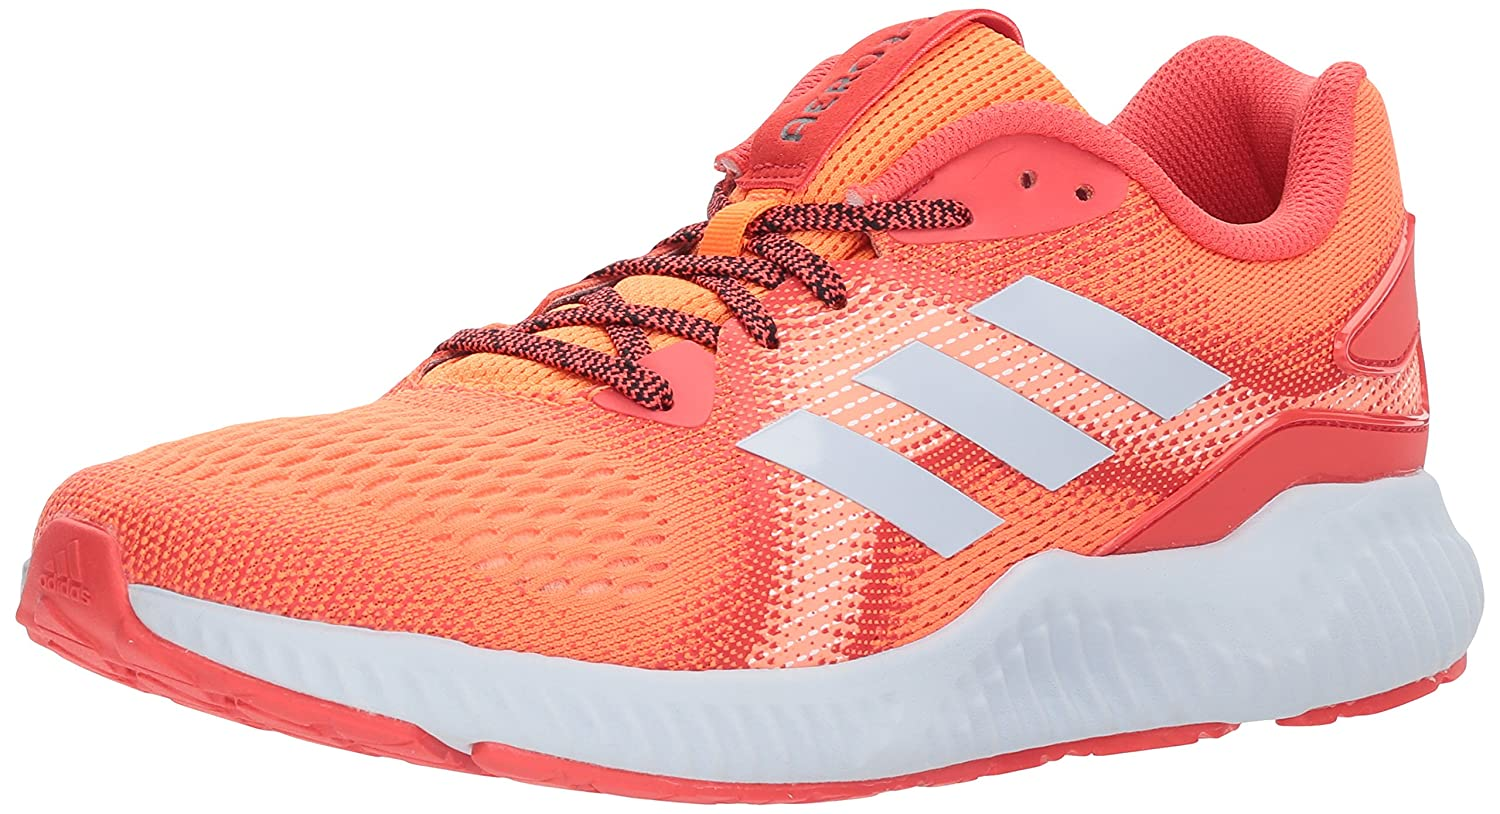 adidas Women's Aerobounce ST w Running Shoe B0711RZSN7 5 B(M) US|Hi-res Orange/Real Coral/Aero Blue